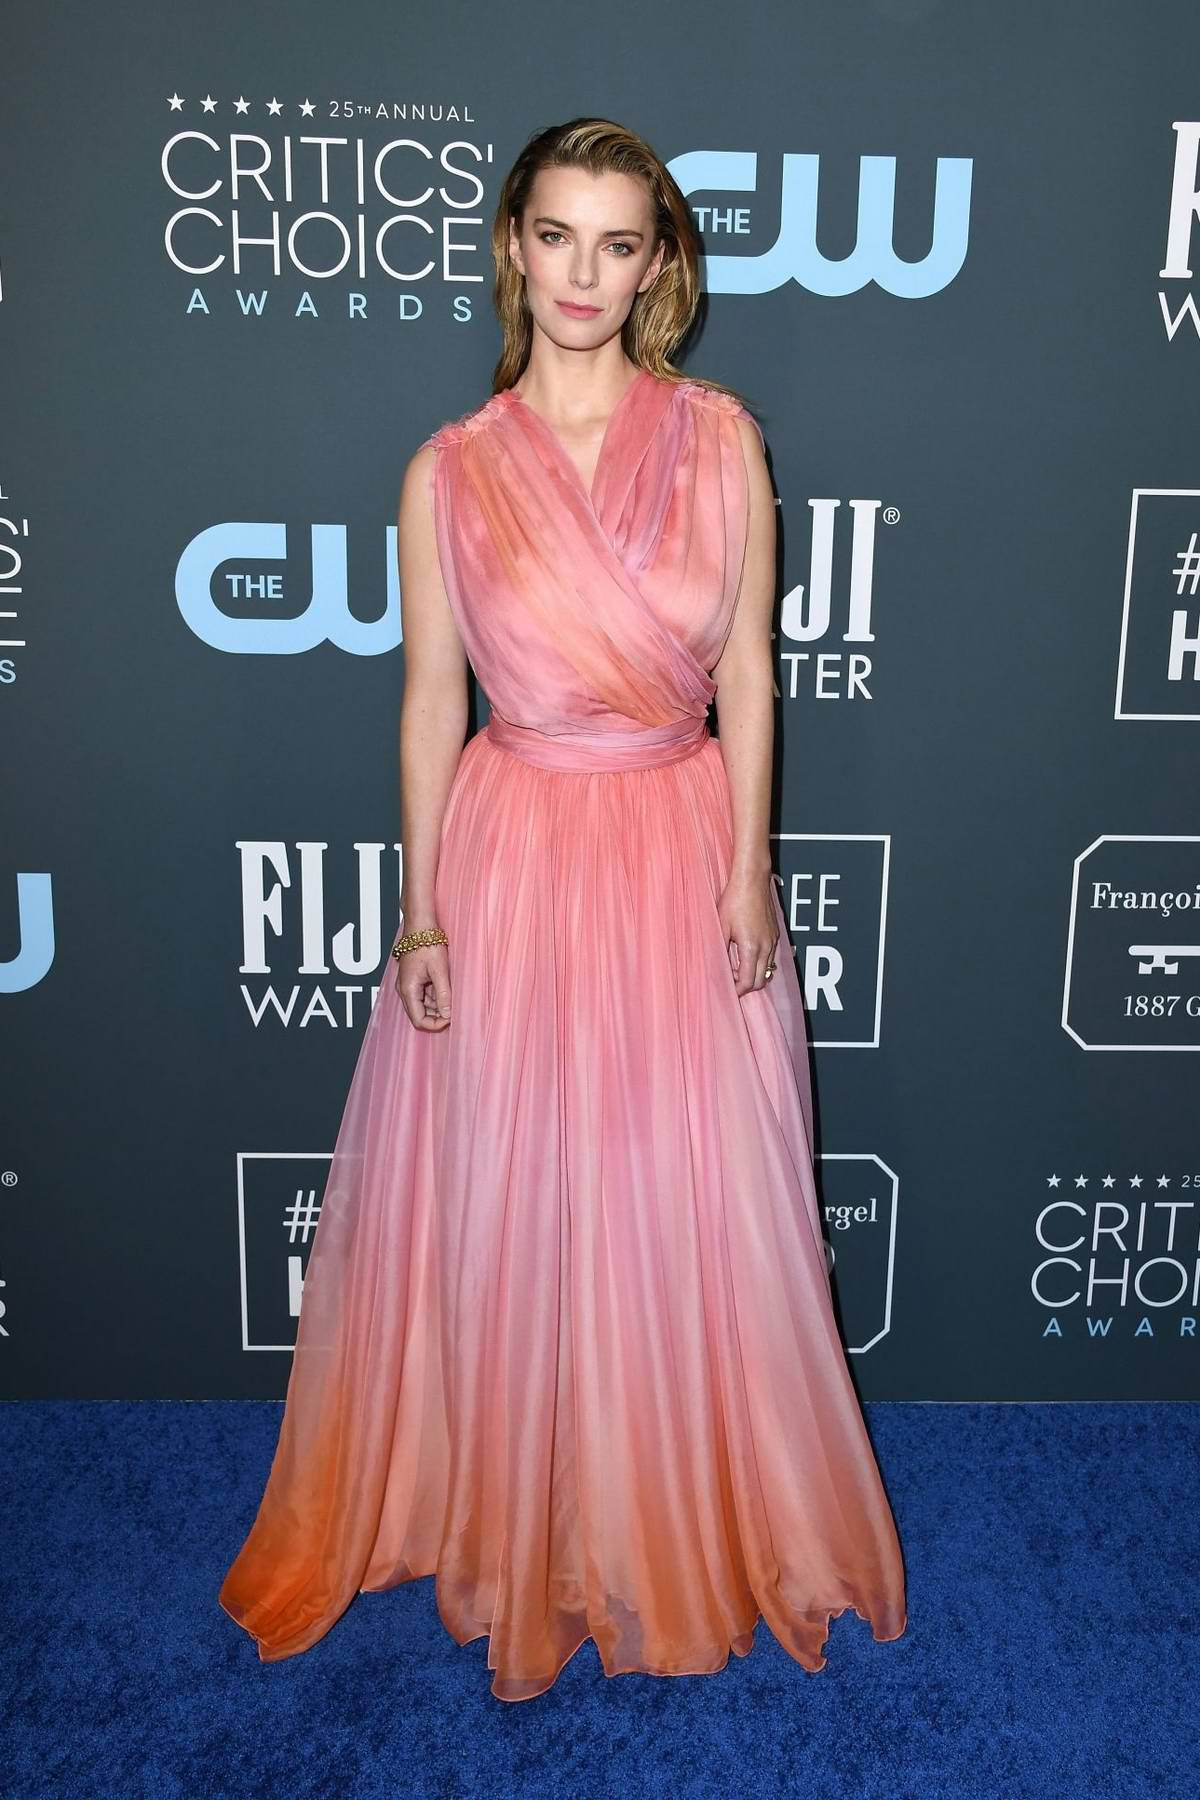 Betty Gilpin attends the 25th Annual Critics' Choice Awards at Barker Hangar in Santa Monica, California